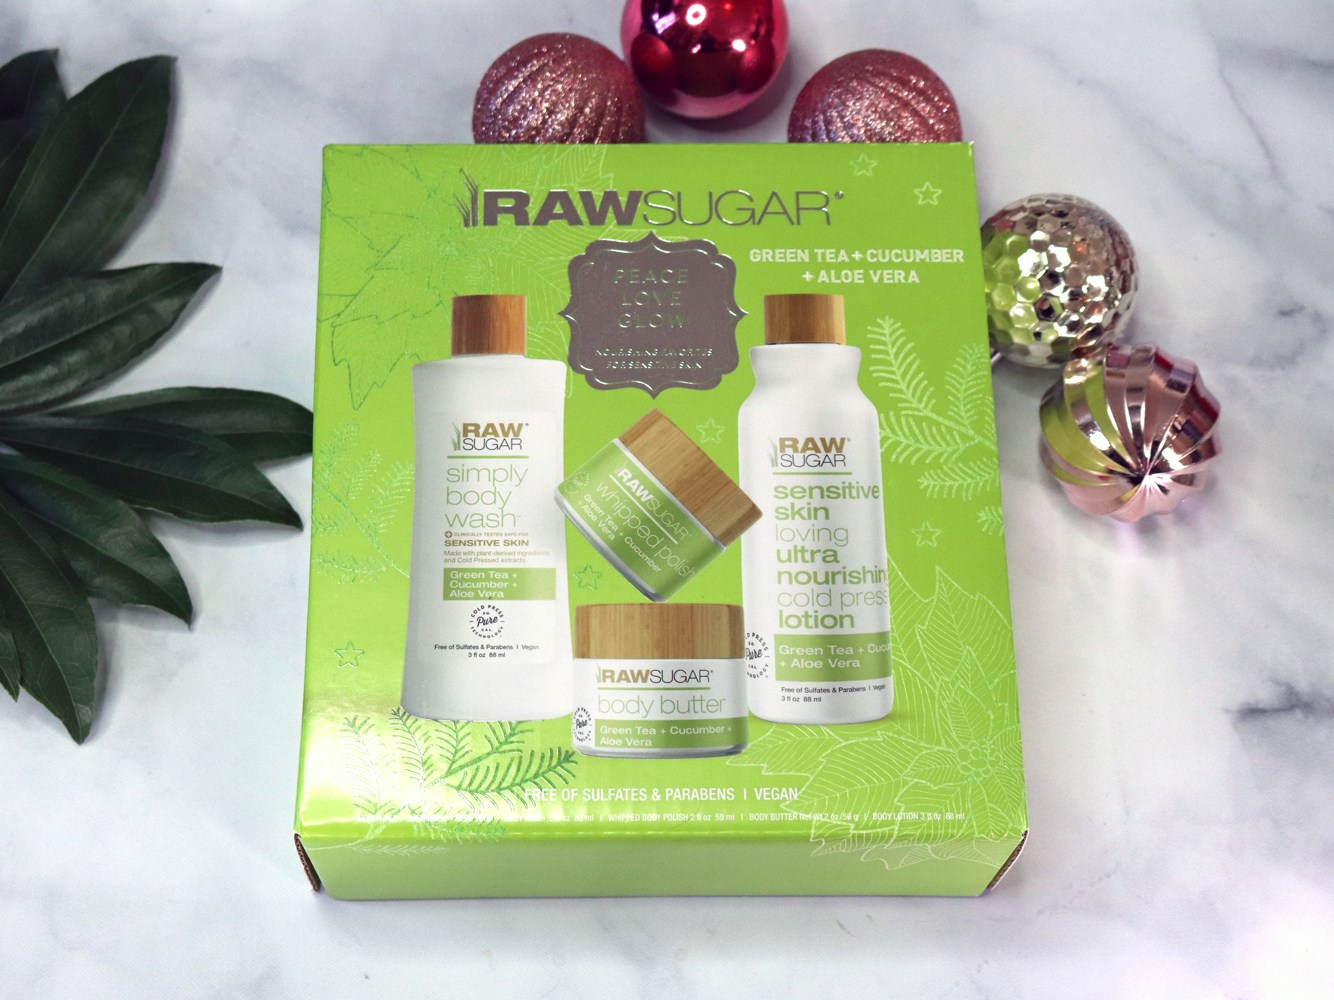 Cruelty Free Holiday Gift Guide 2020 - Raw Sugar gift set